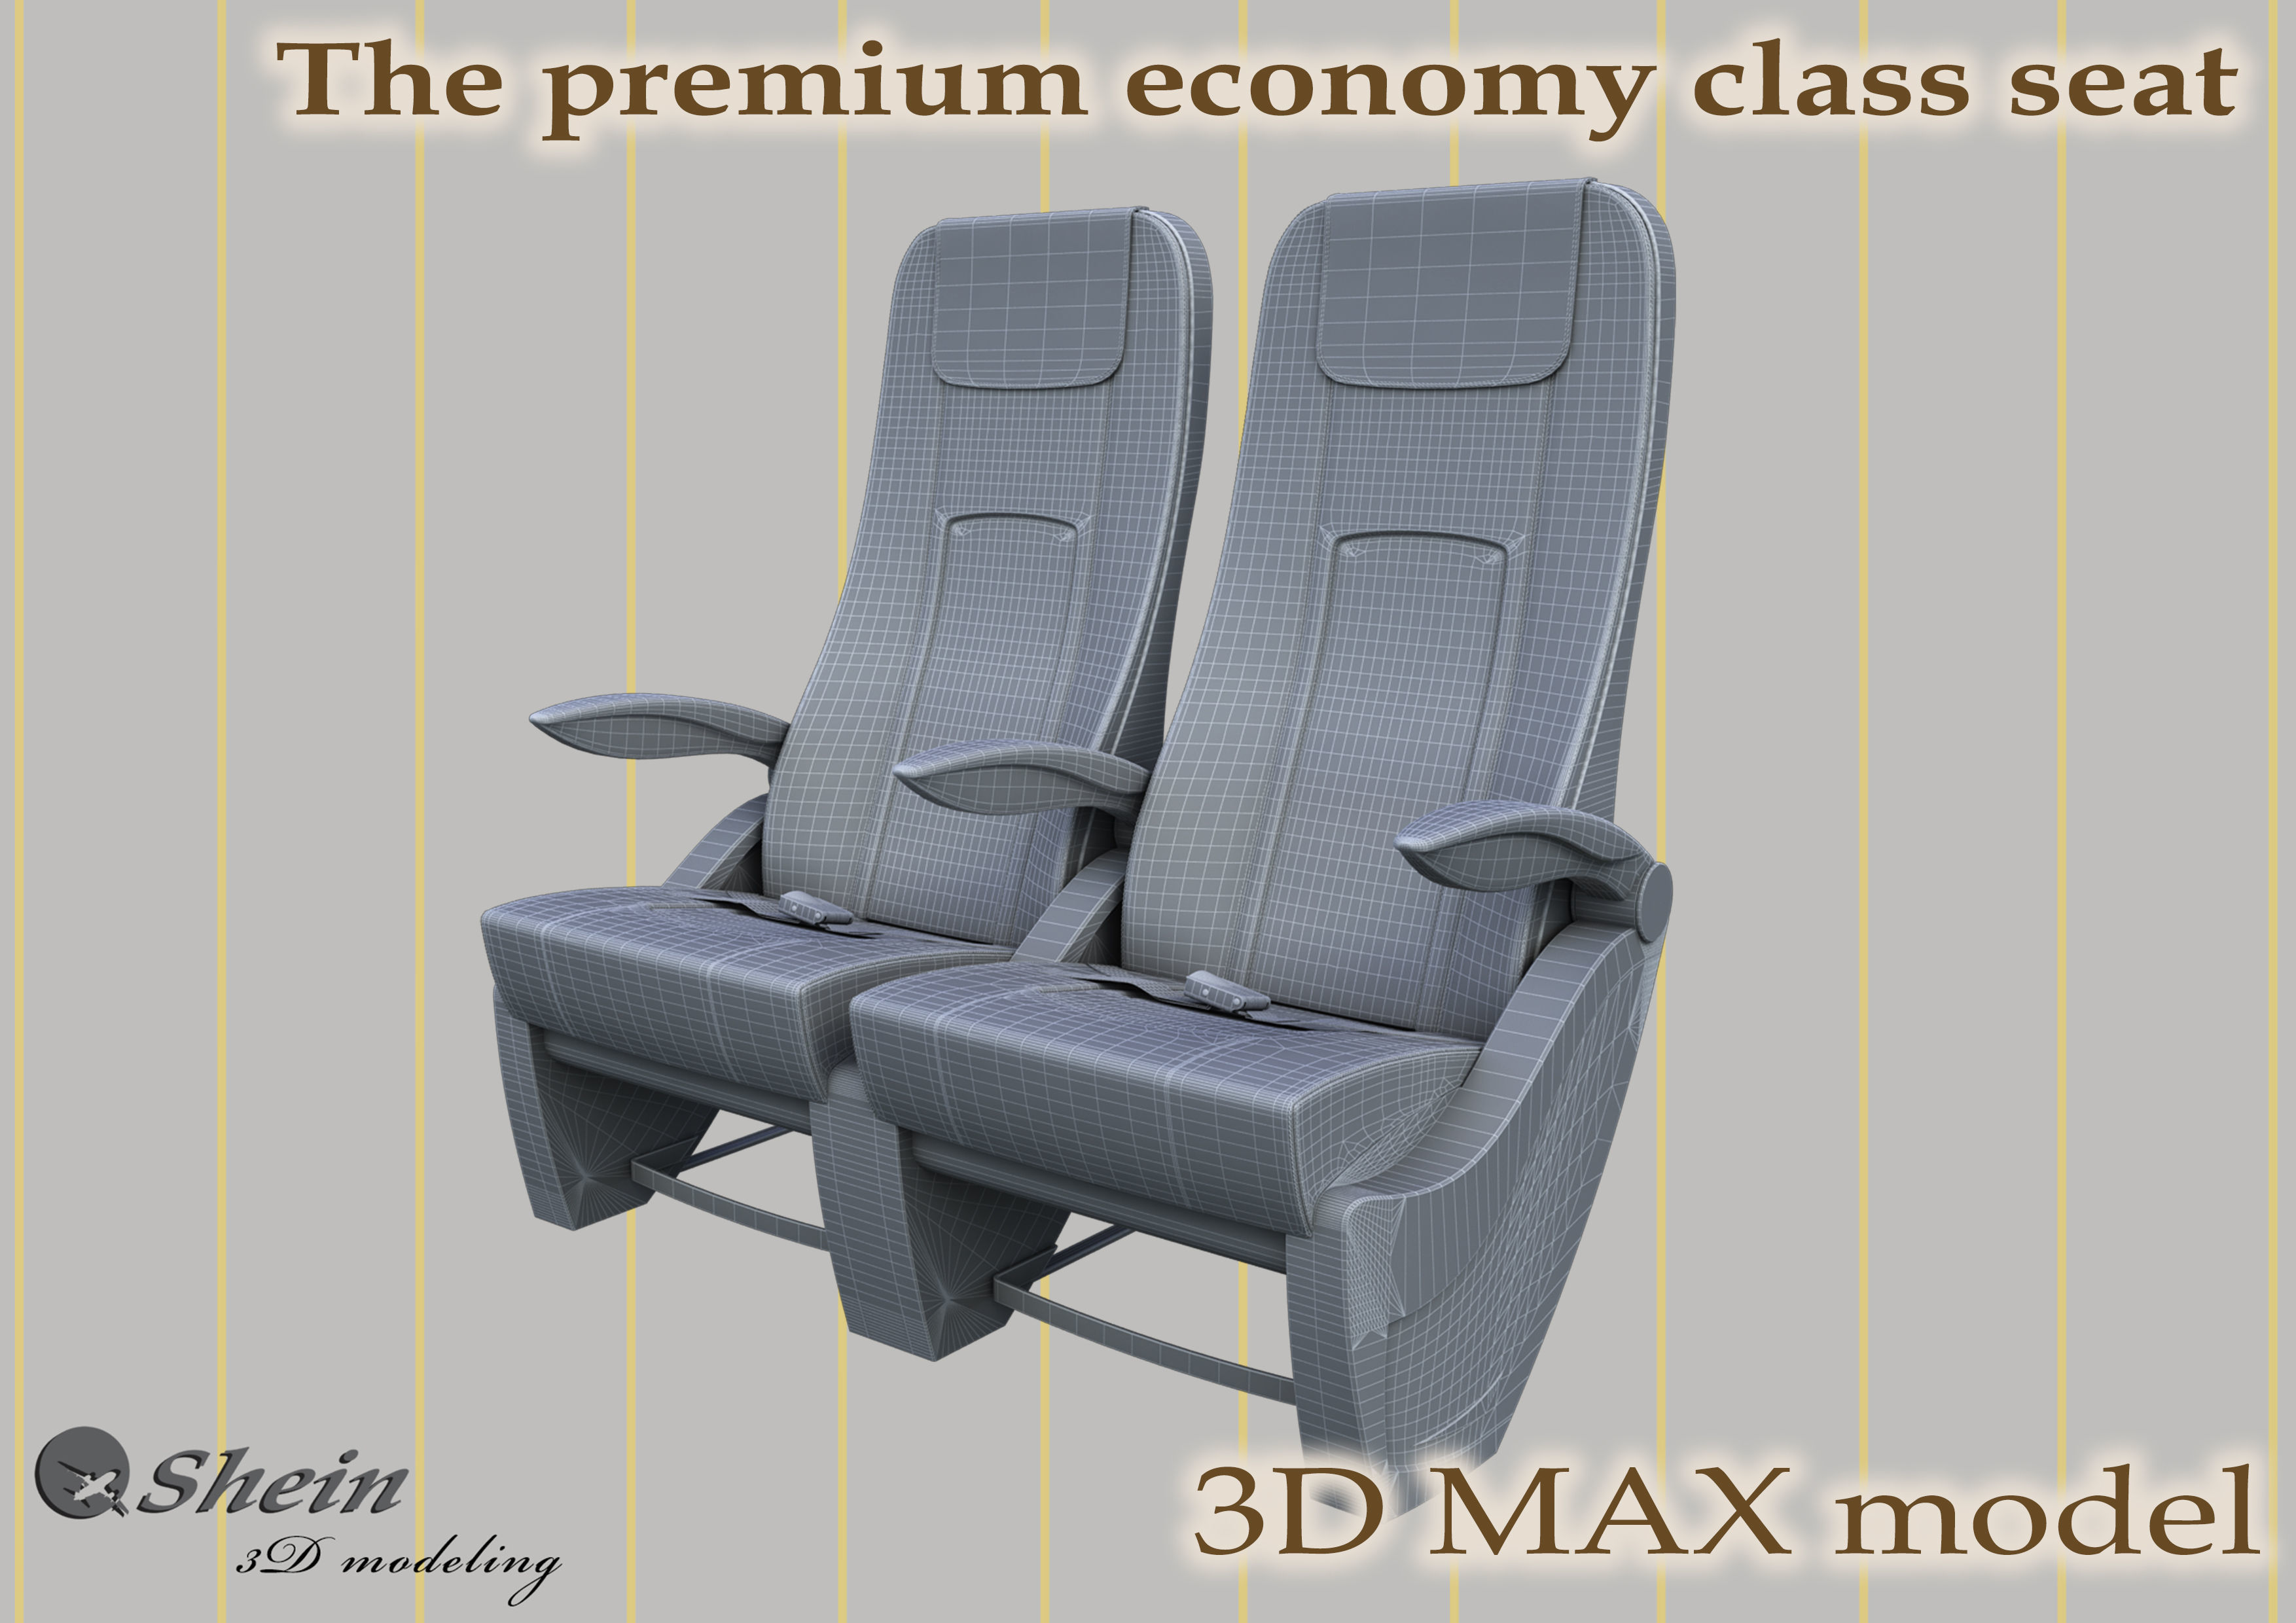 The premium economy class seat with stitches